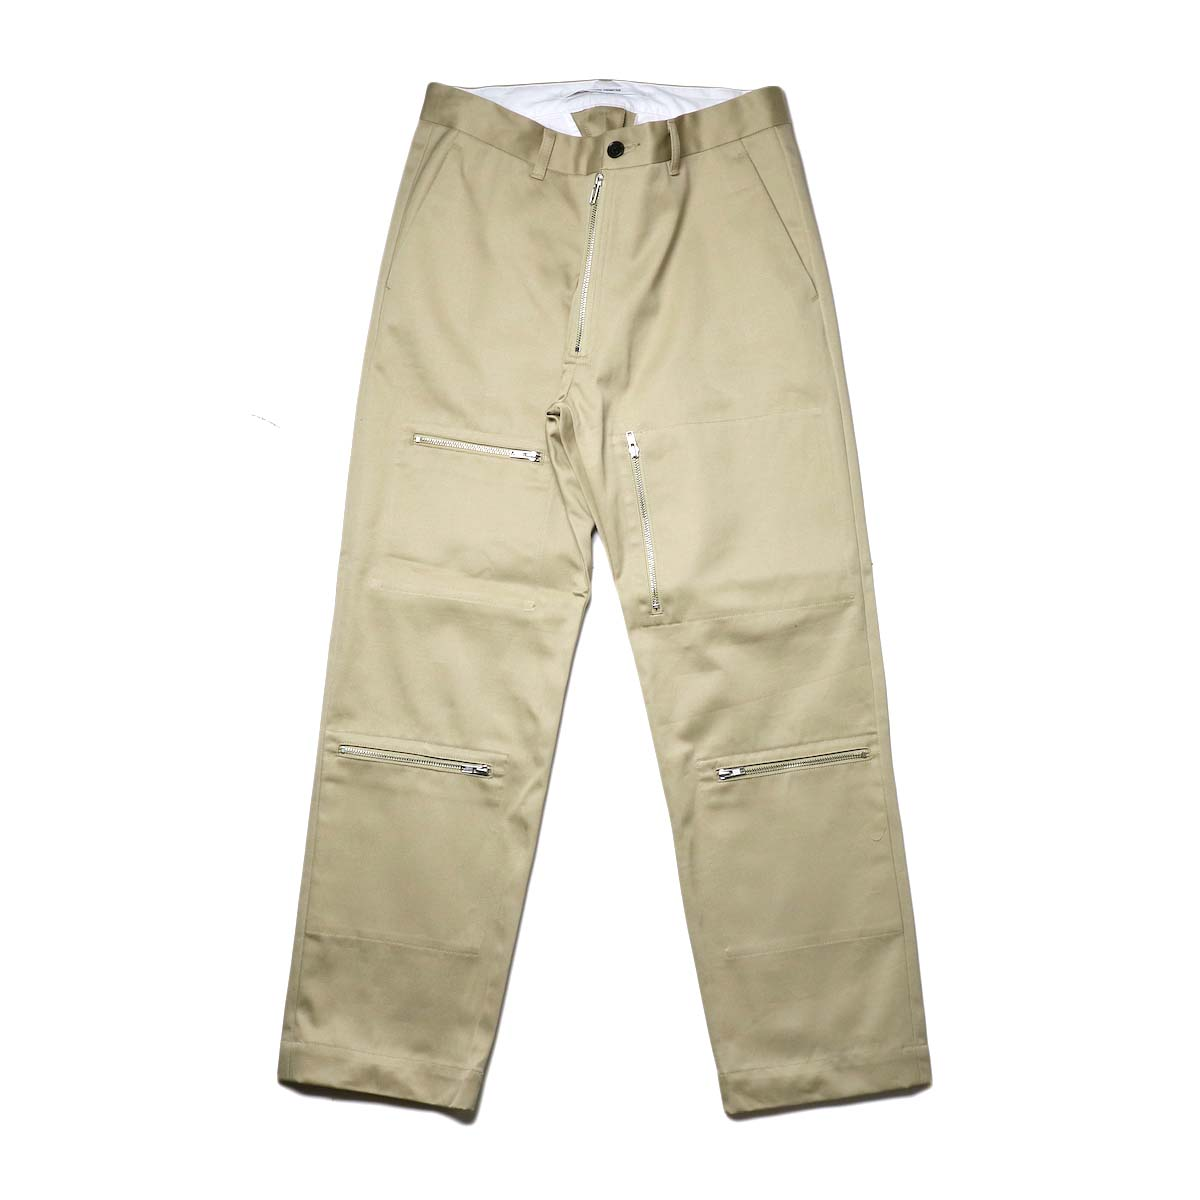 FUTURE PRIMITIVE / FP FZ FLIGHT CHINO PANTS (Beige)